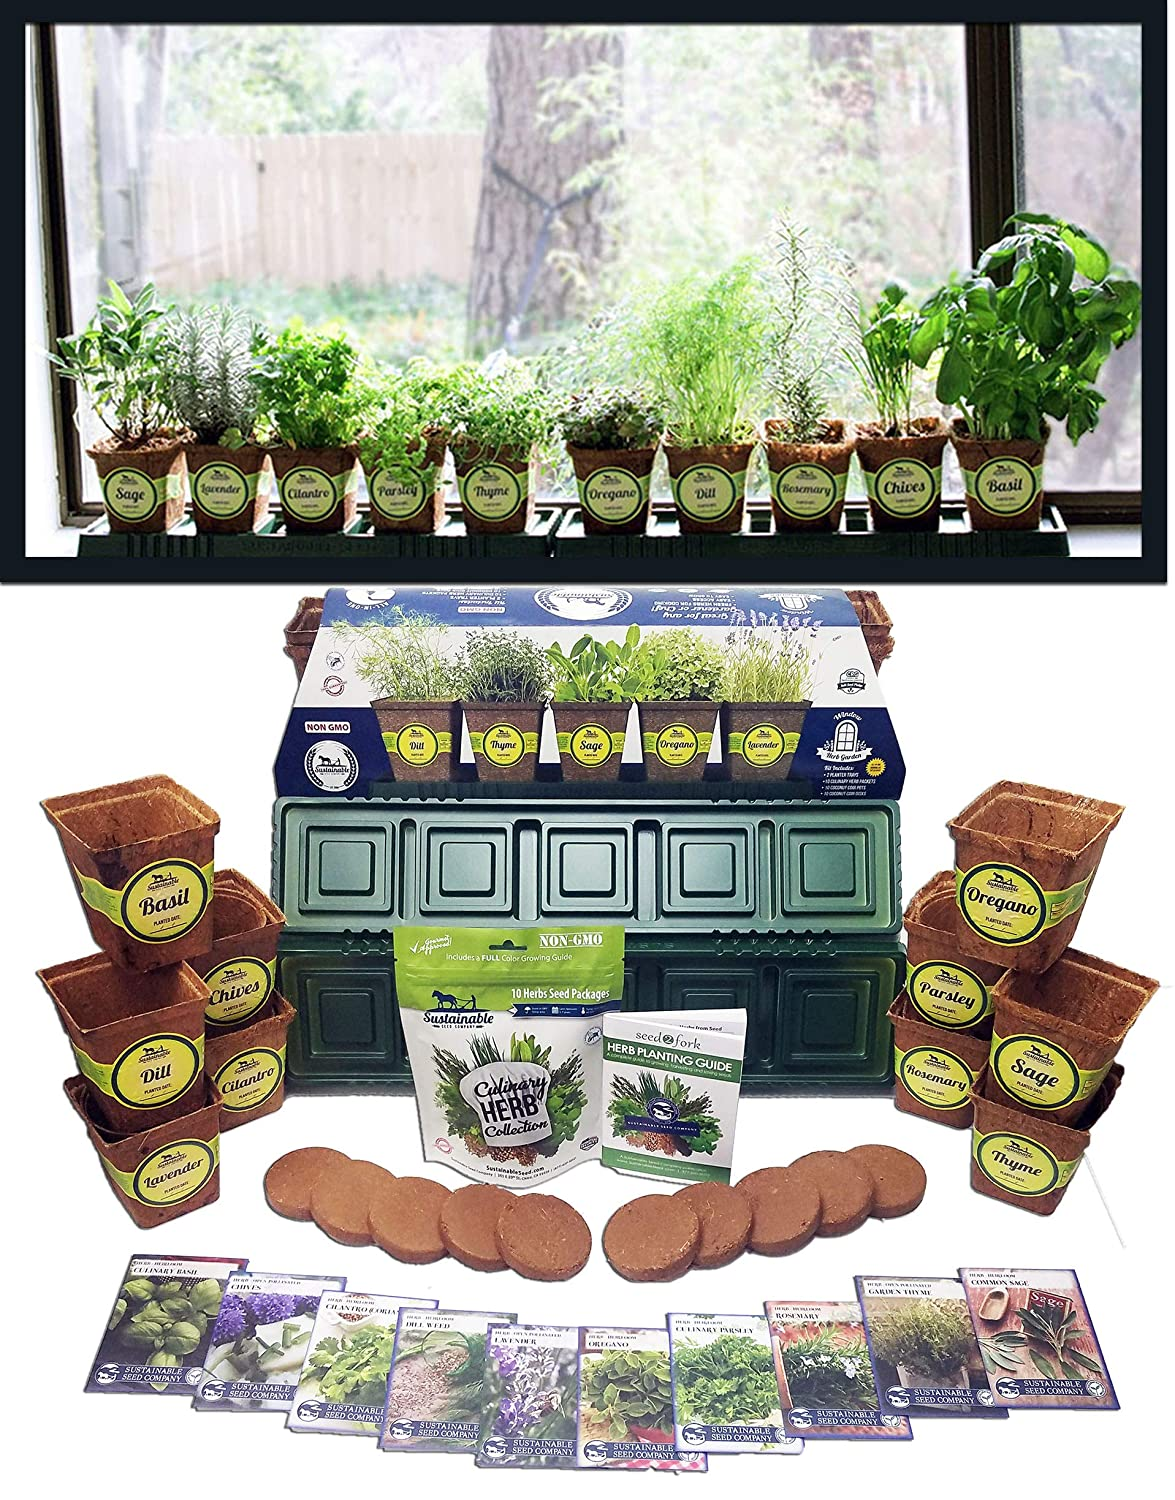 Windowsill Herb Garden Kit, Herb Planter Comes Complete with a 10 Variety Non GMO Heirloom Herb Seed Collection & Herb Pots. windowsill herb garden